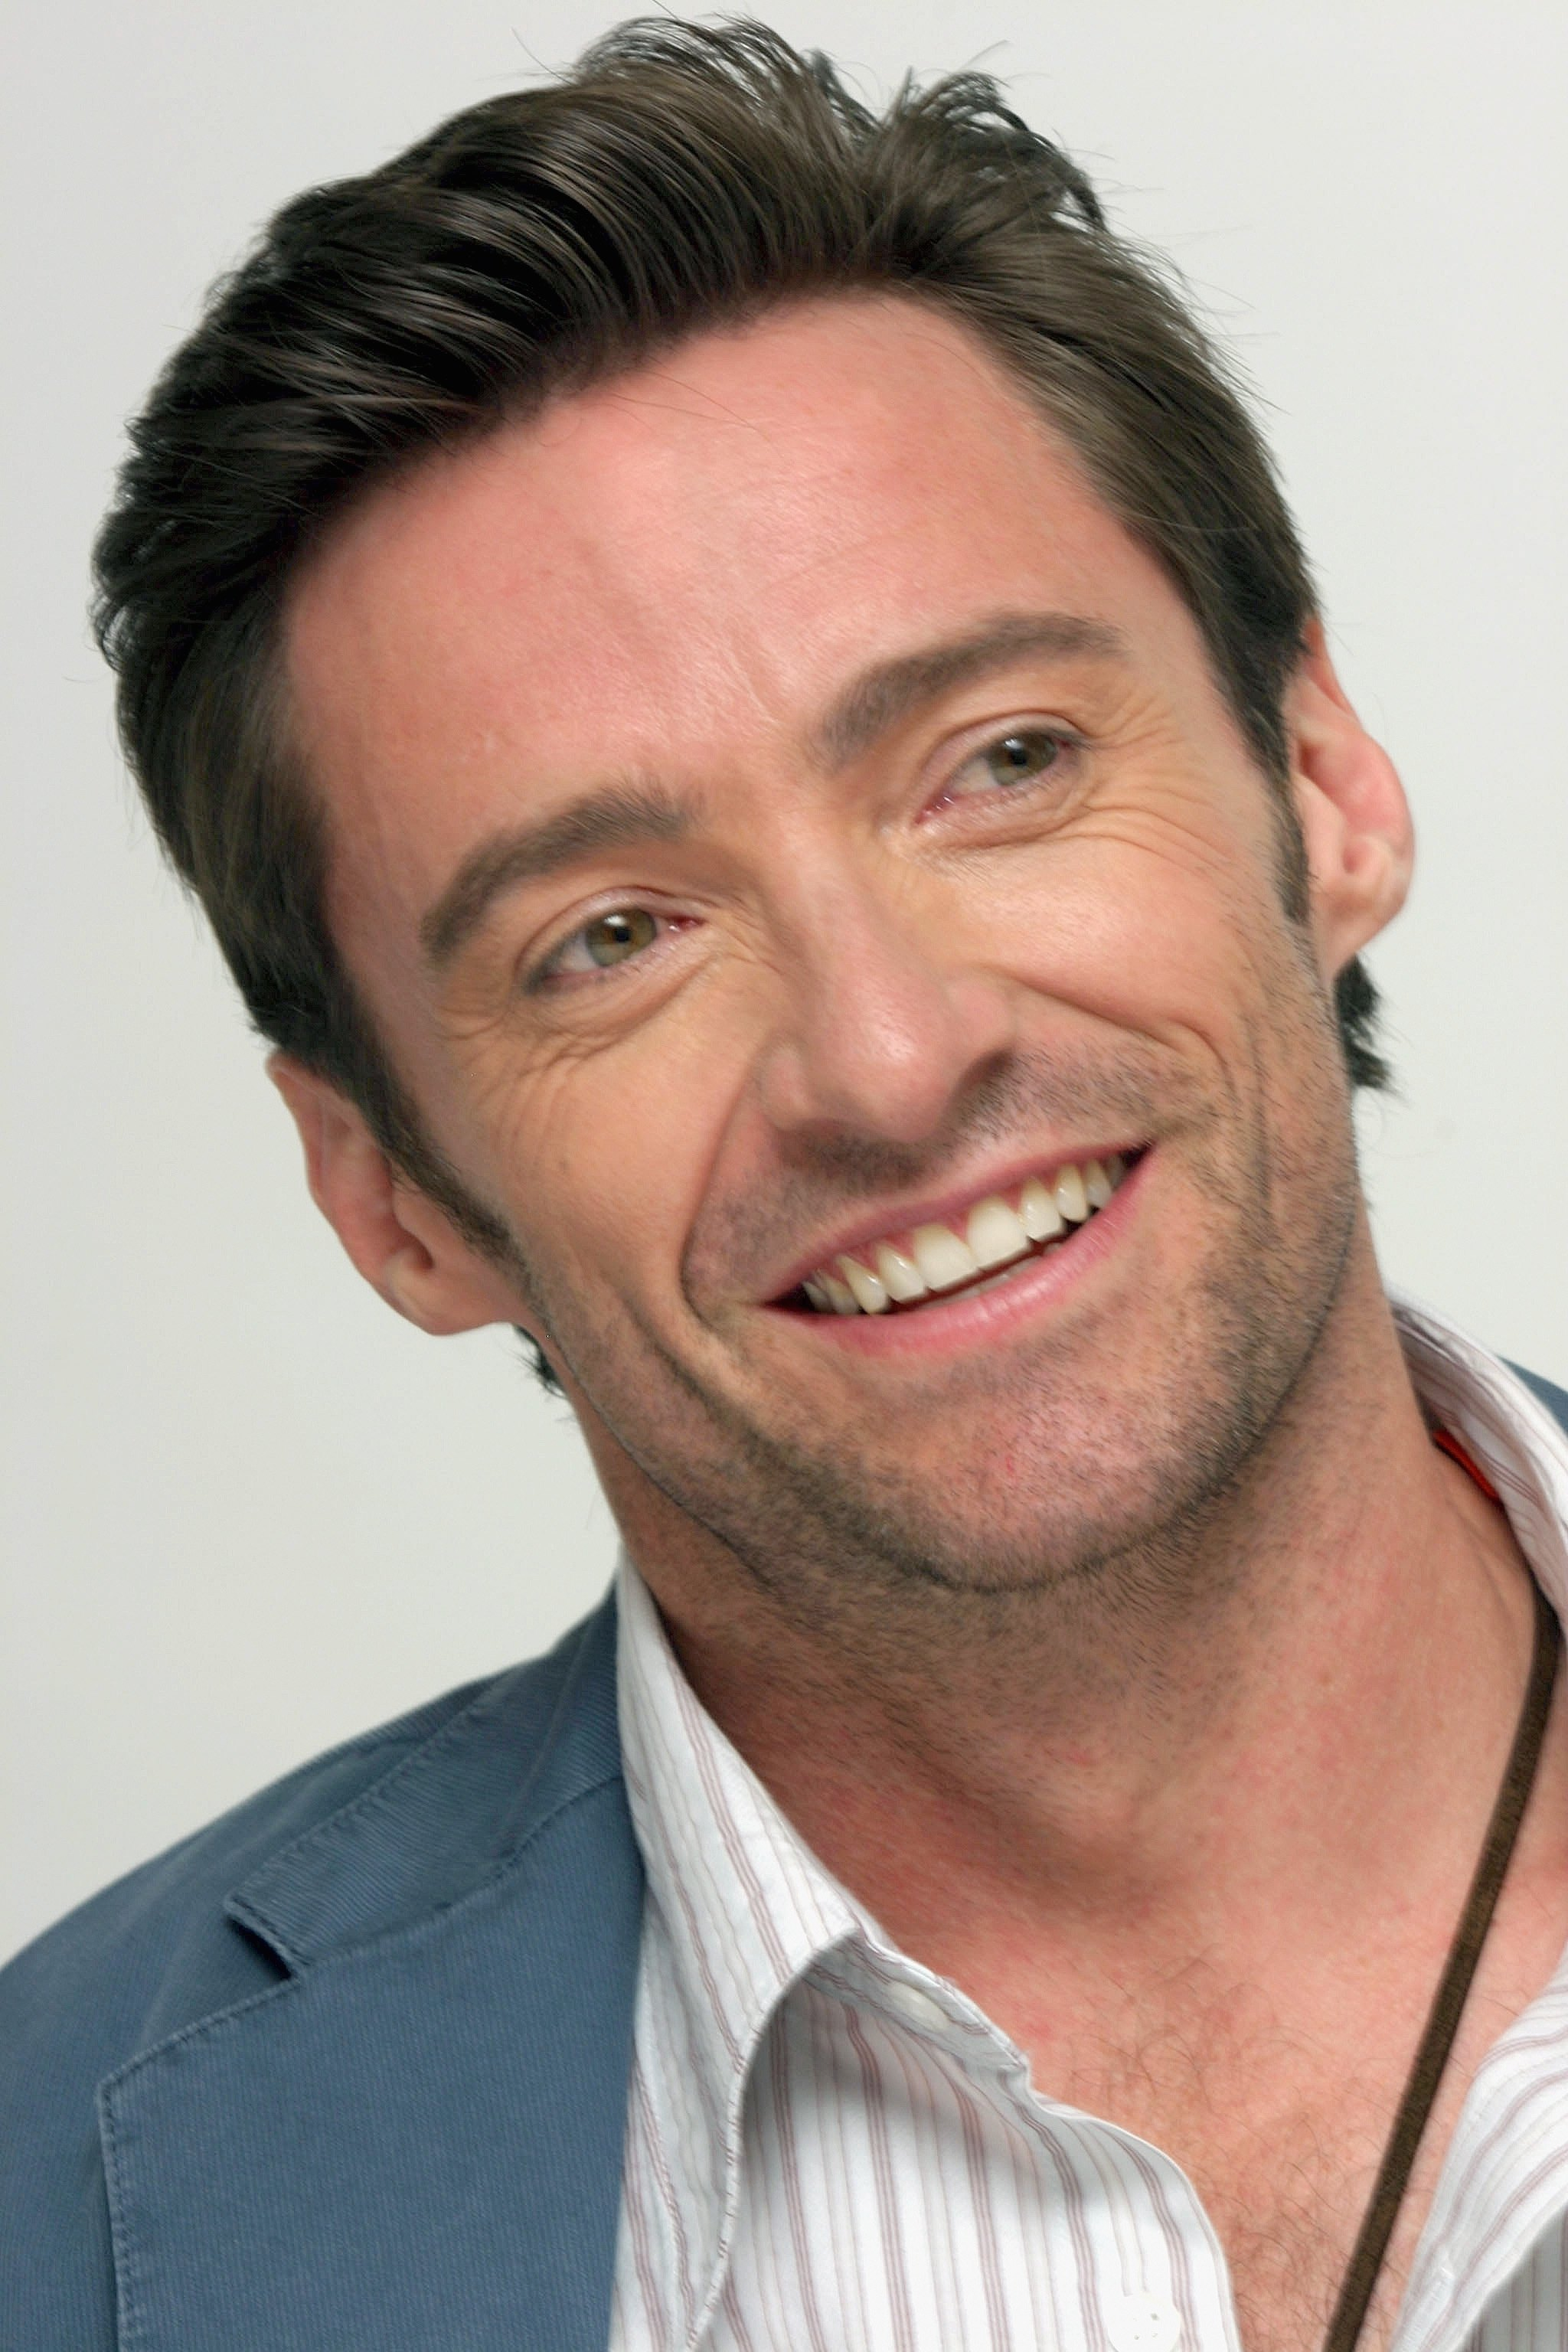 hugh jackman photo, pics, wallpaper - photo #308829